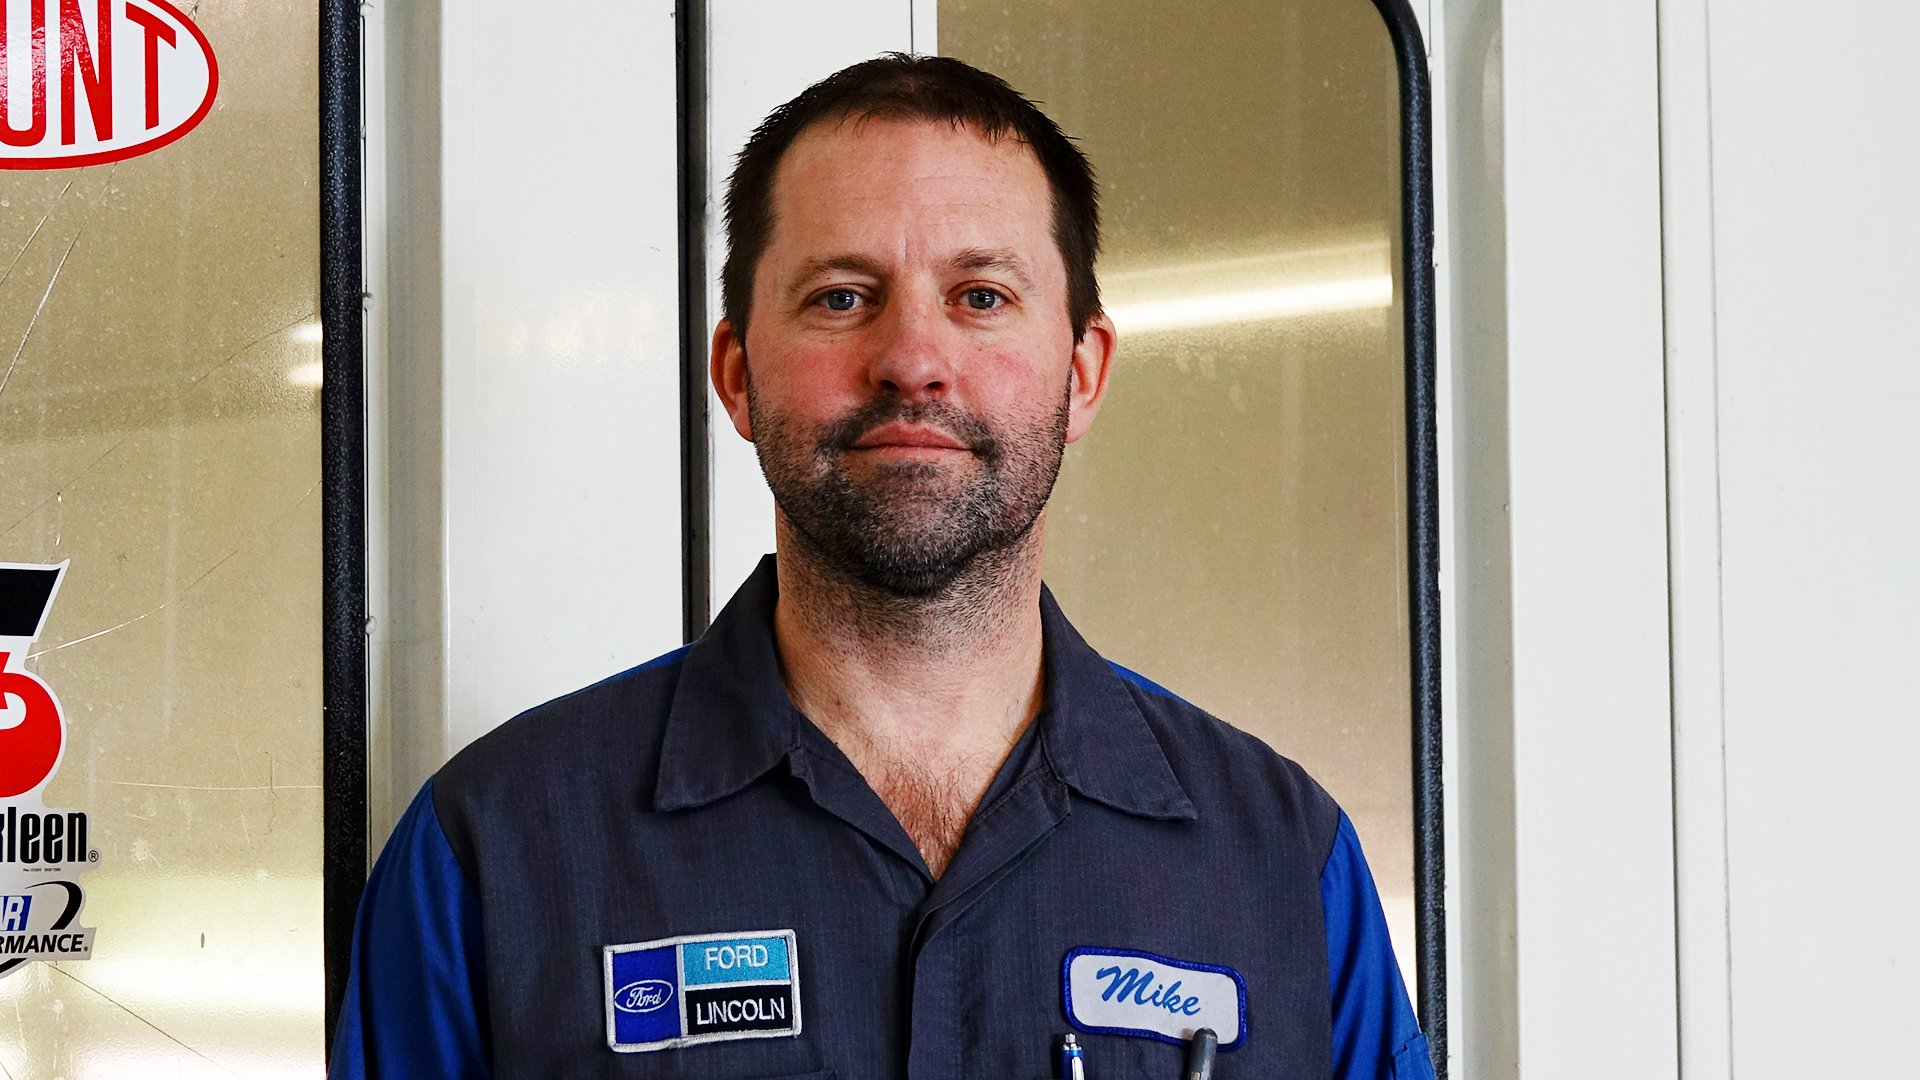 Congrats to the Eide Ford Employee of the Month this month, Mike Davis!